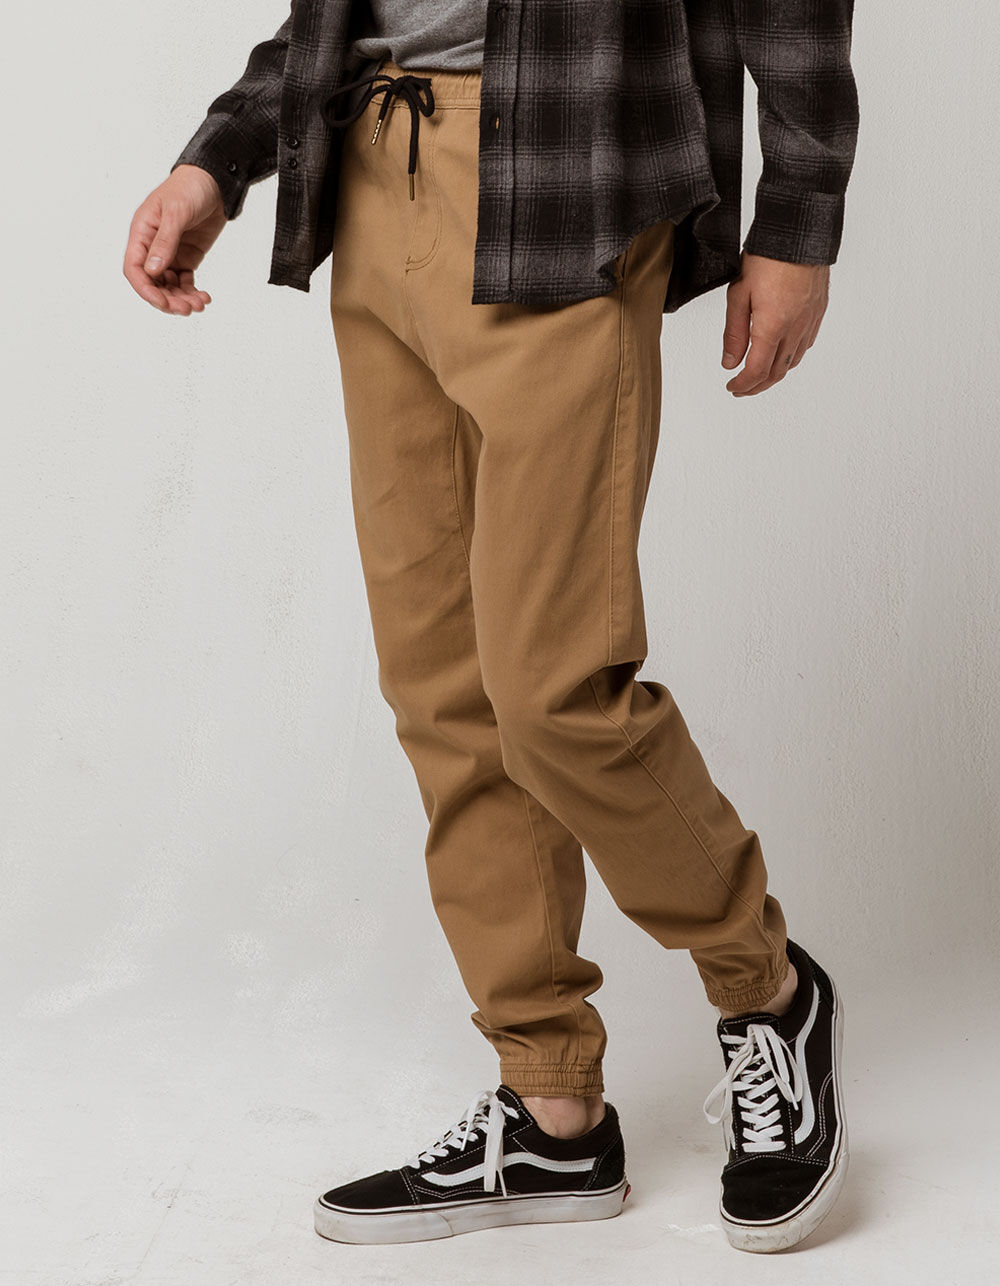 CHARLES AND A HALF Tan Twill Jogger Pants